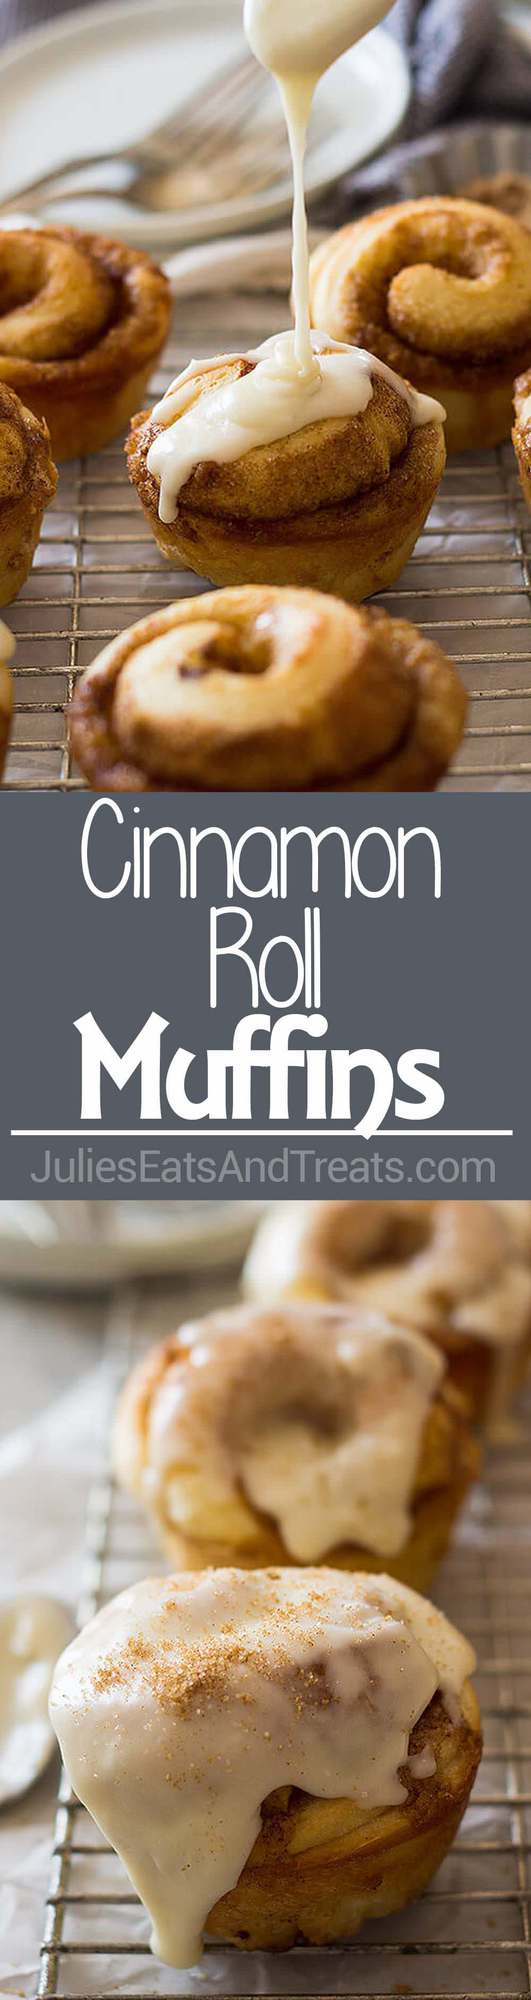 Cinnamon Roll Muffins ~ Light and fluffy, filled with cinnamon and sugar then drizzled with a vanilla icing! The Perfect Easy Breakfast Recipe!